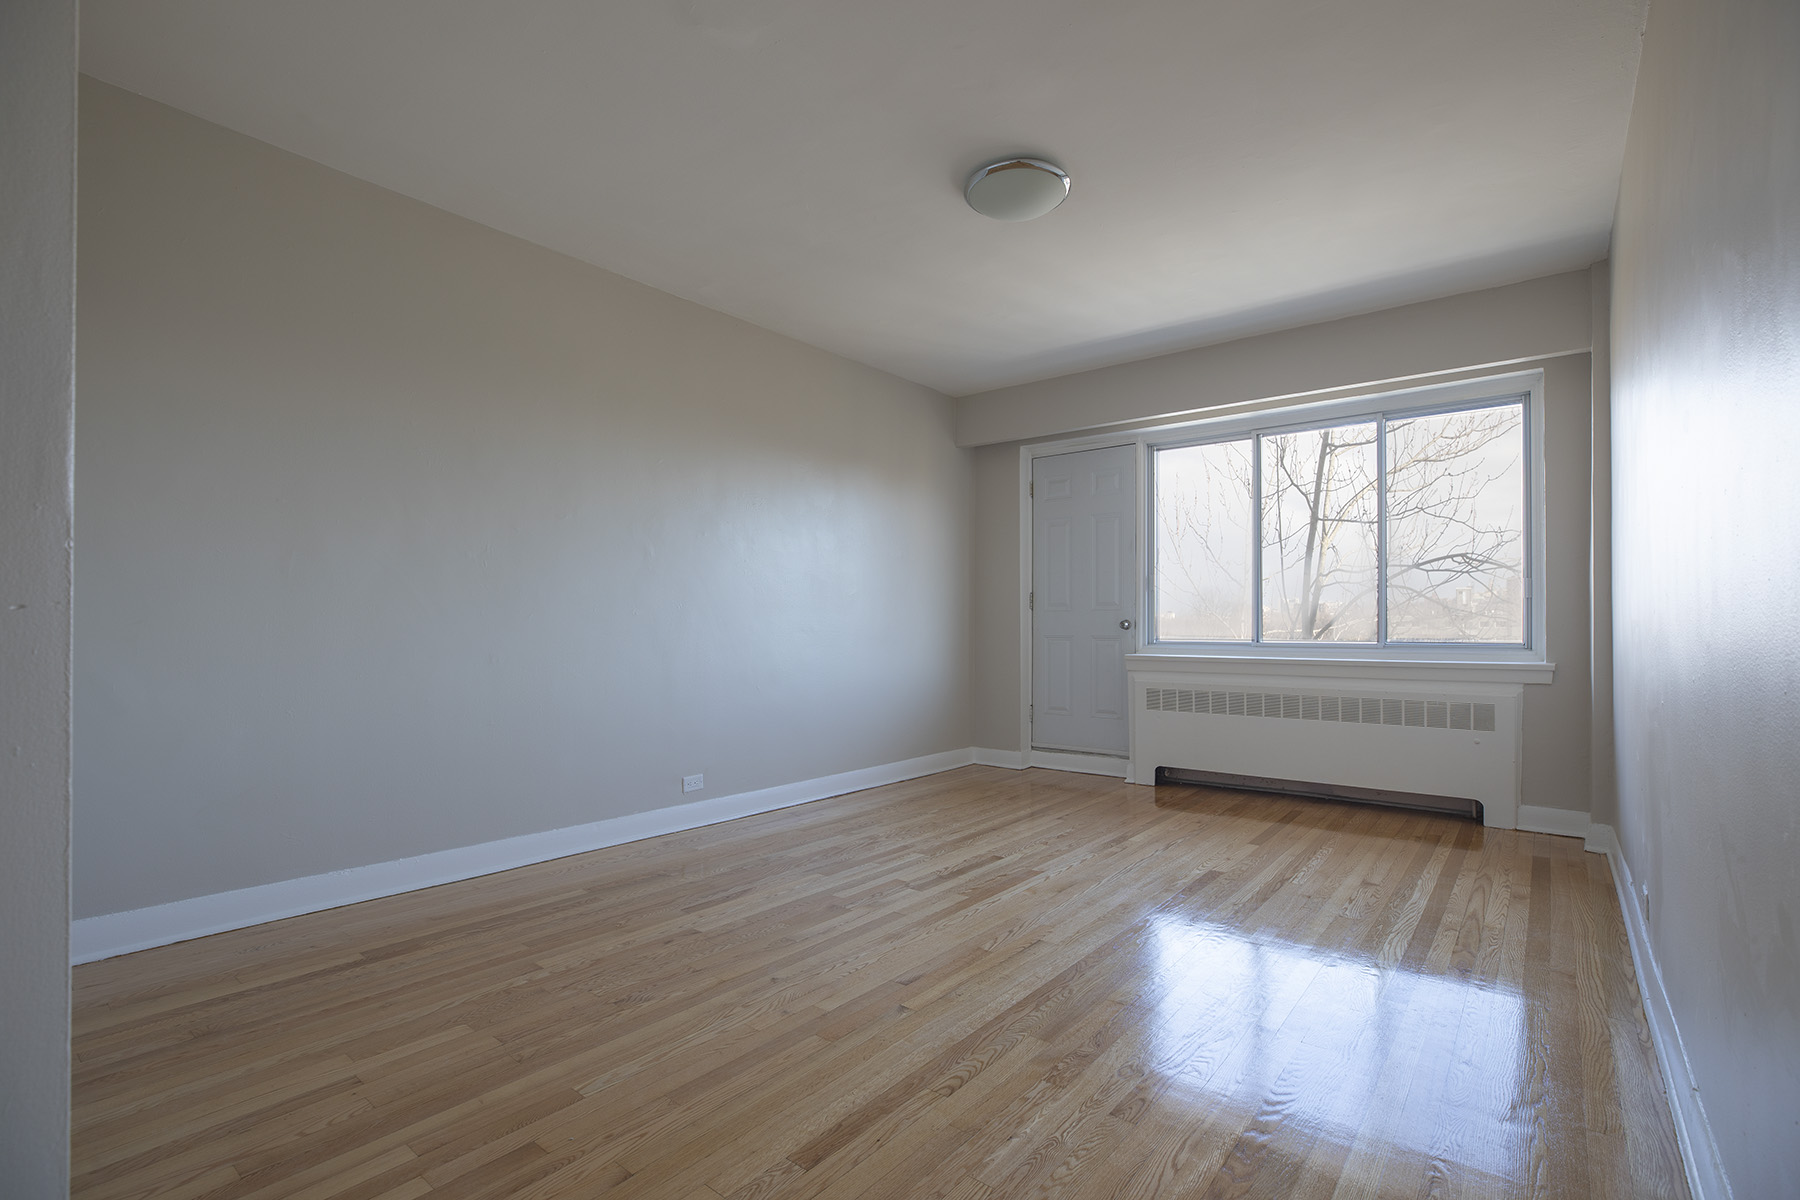 1 bedroom Apartments for rent in Montreal West at 6955 Fielding - Photo 04 - RentQuebecApartments – L401541